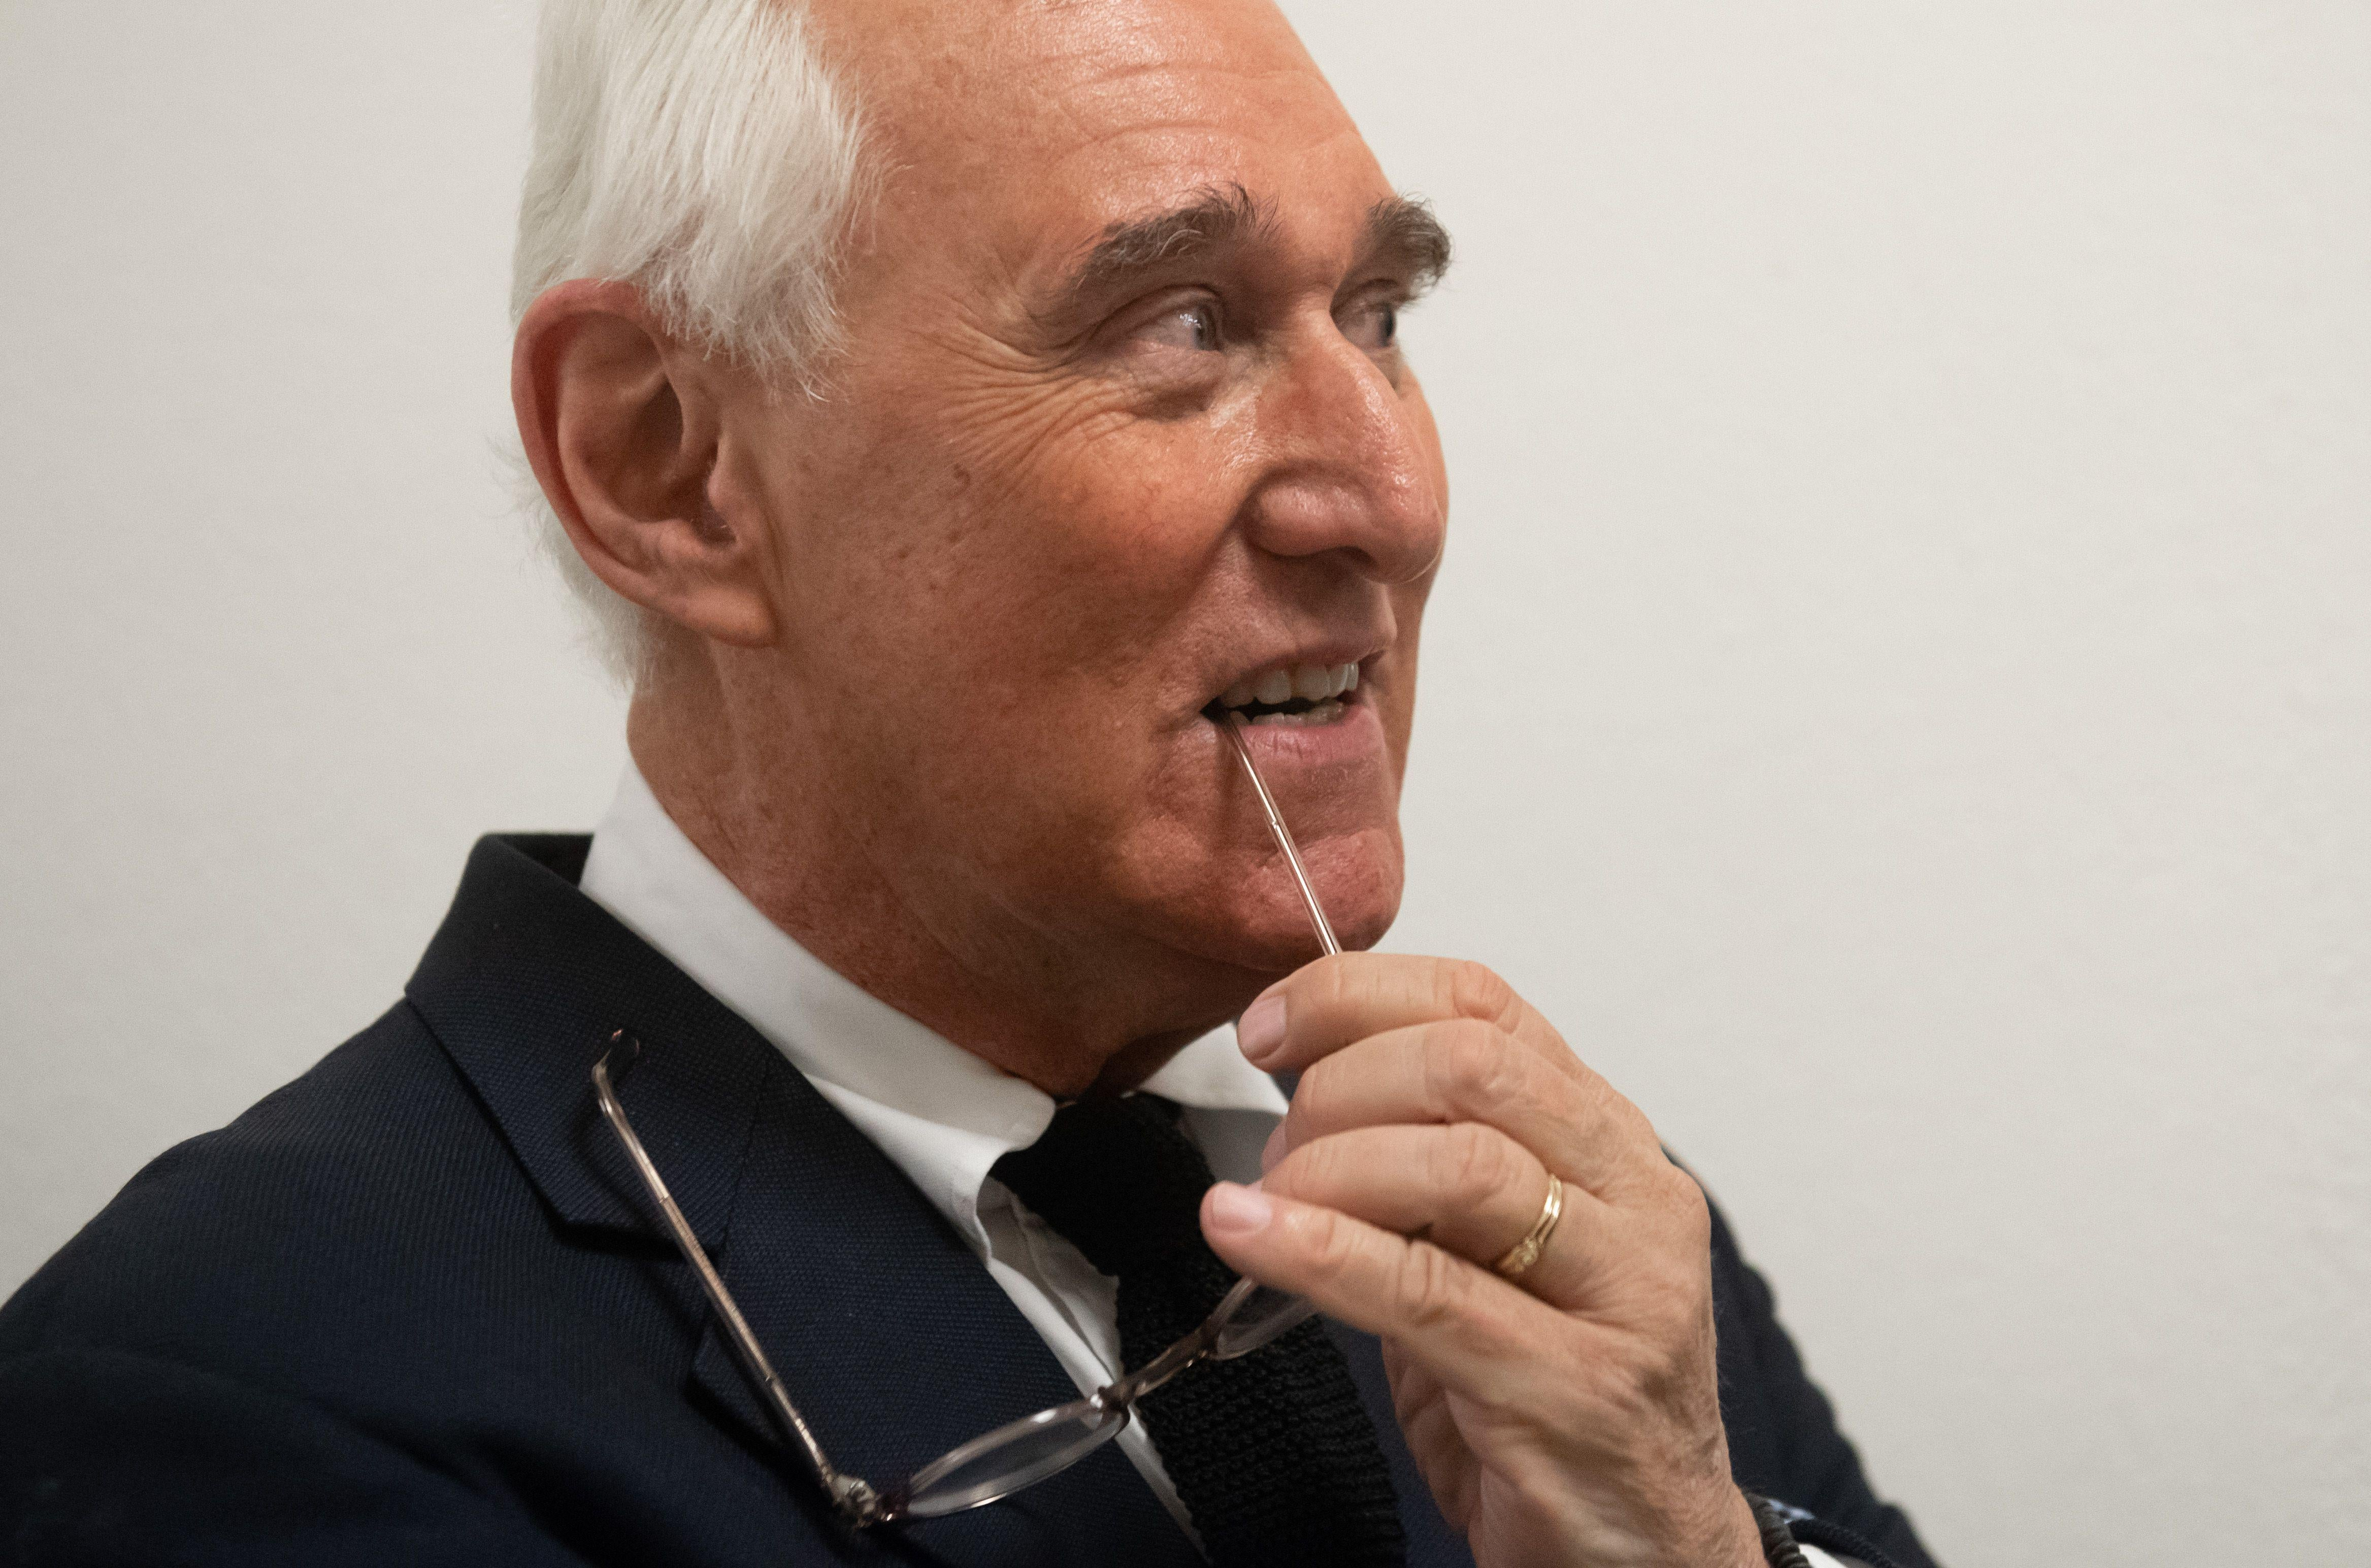 Roger Stone with a stem of his glasses in his mouth